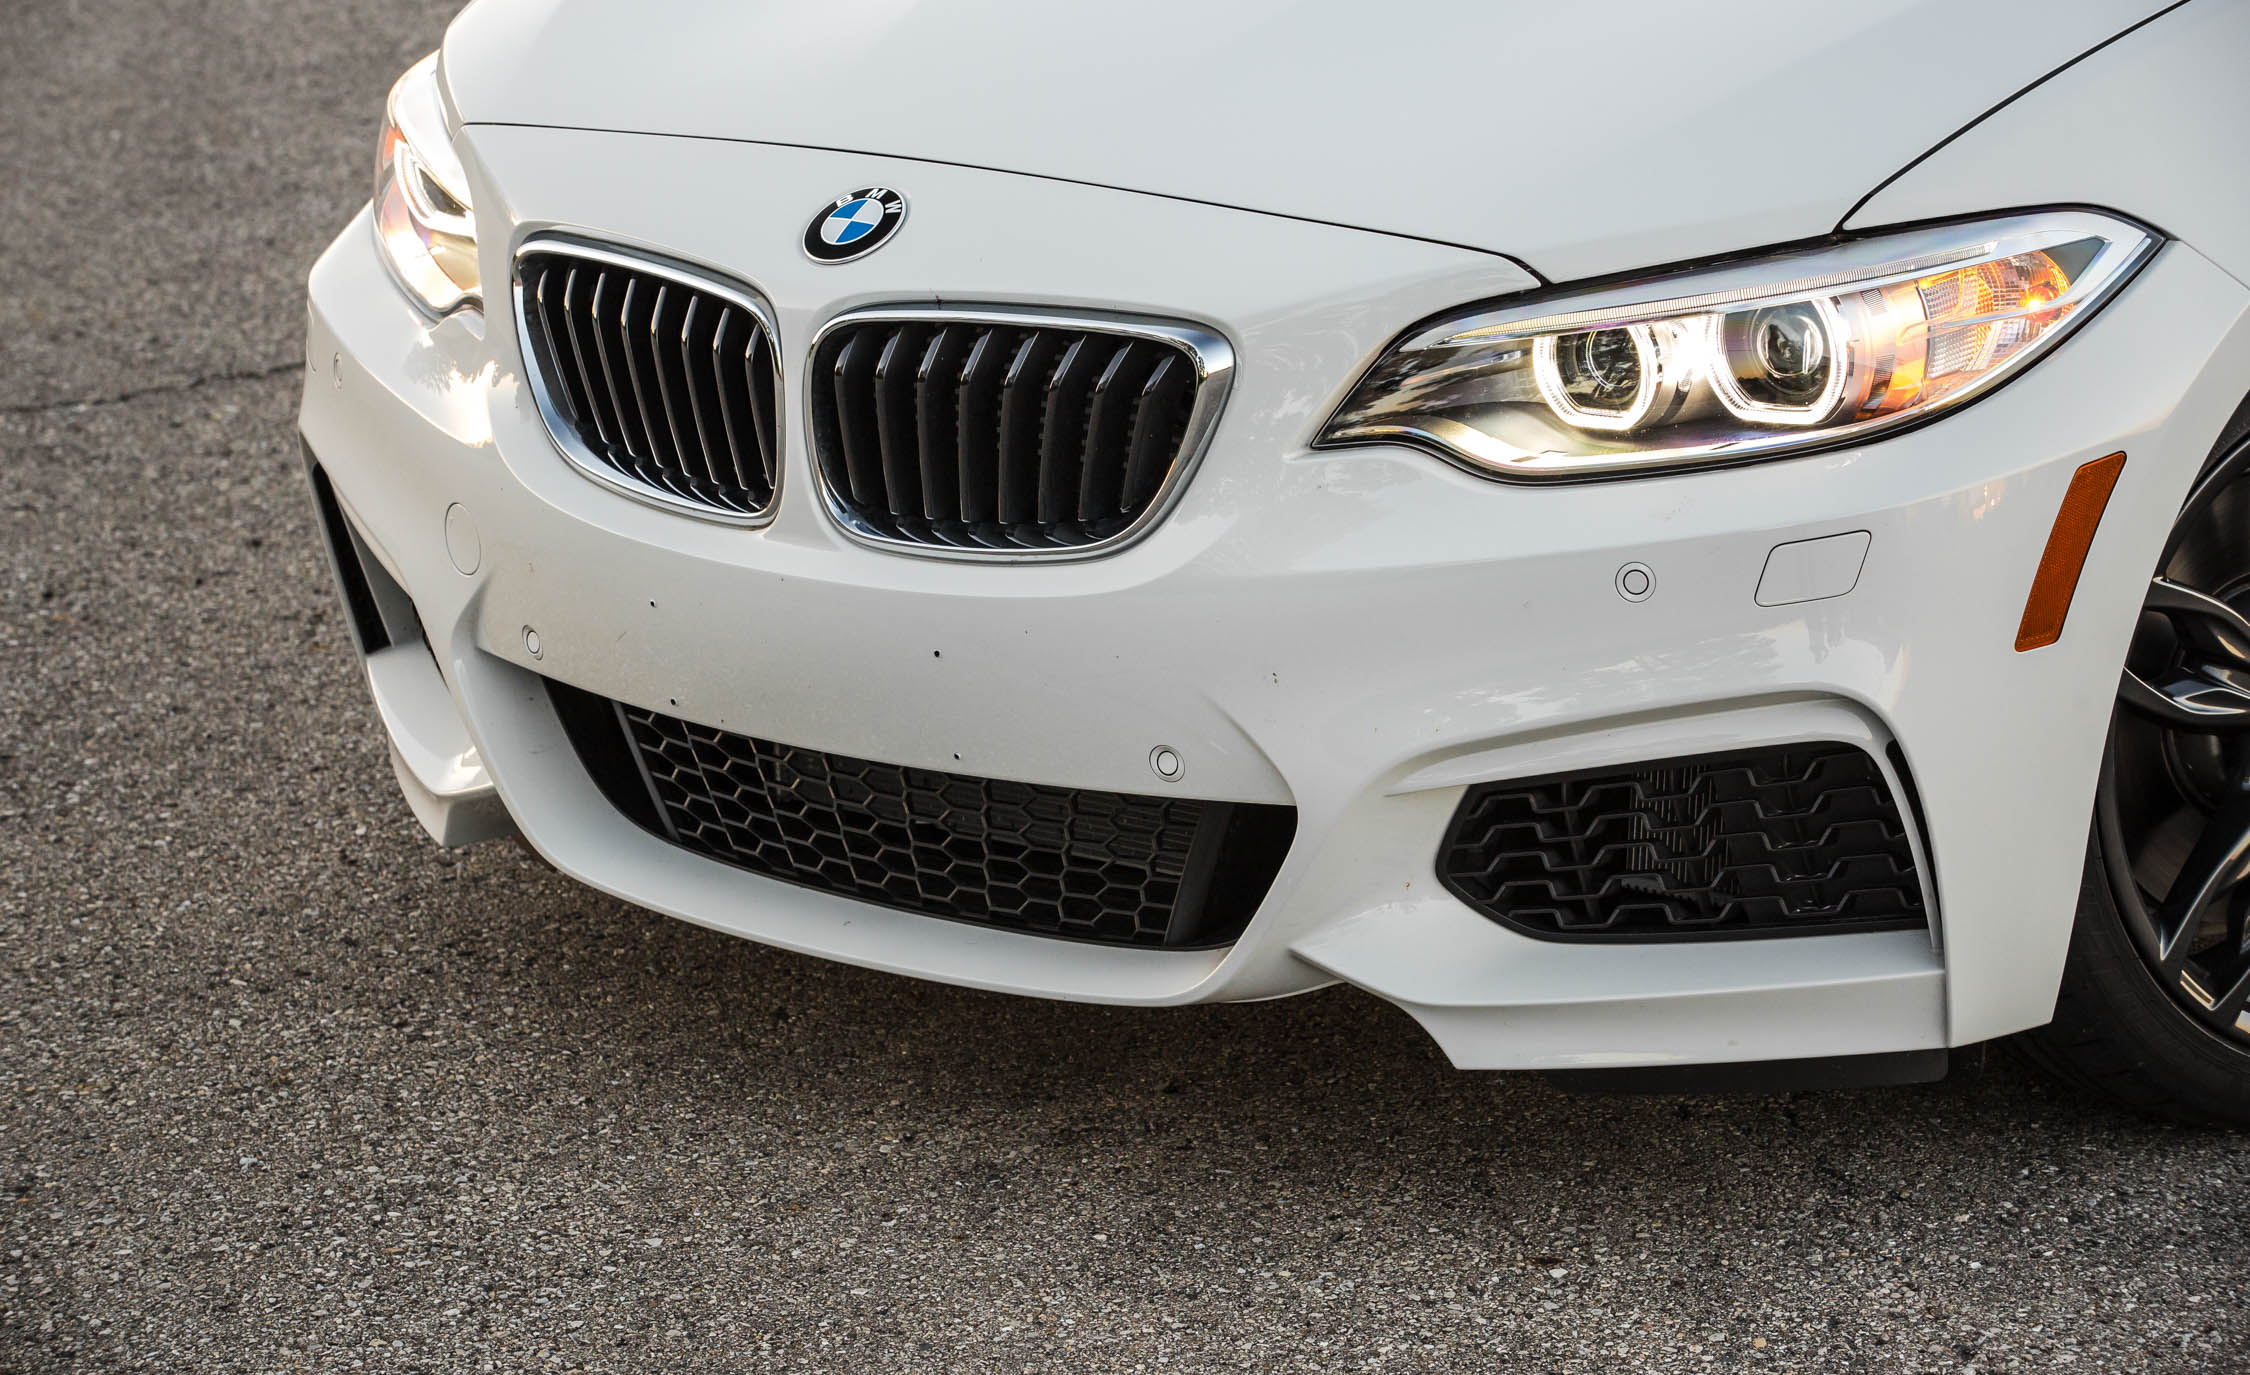 2017 BMW M240i Coupe Automatic Exterior View Front Bumper And Grille (Photo 7 of 36)